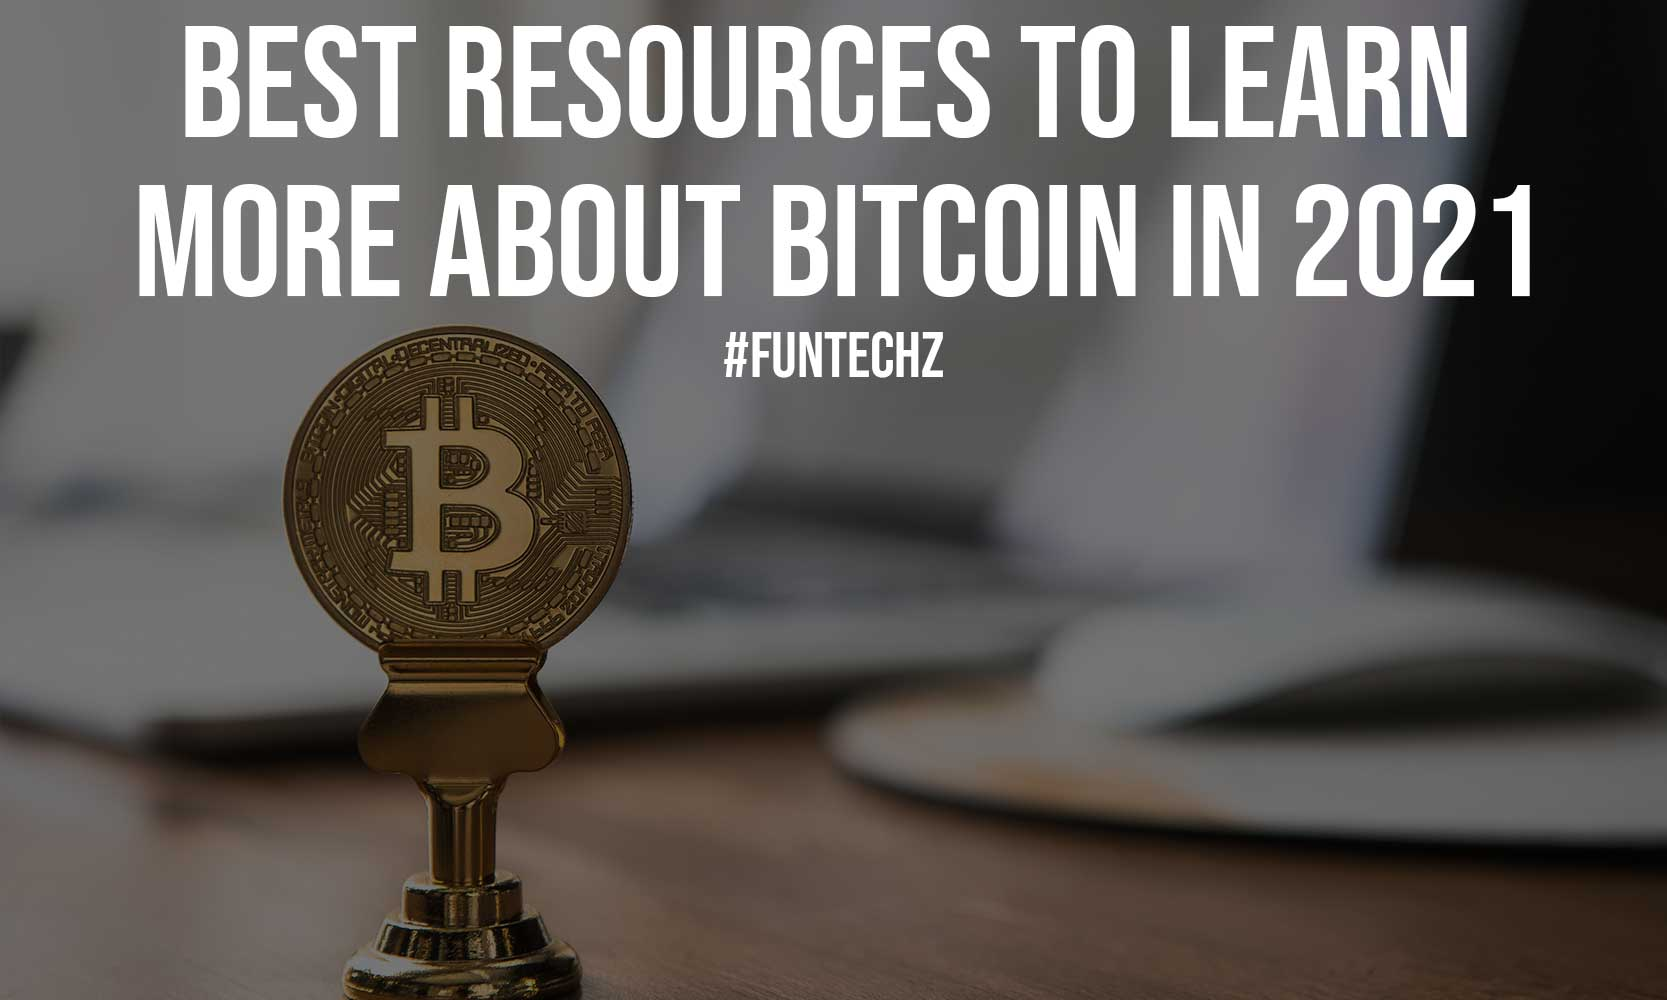 Best Resources to Learn More About Bitcoin in 2021